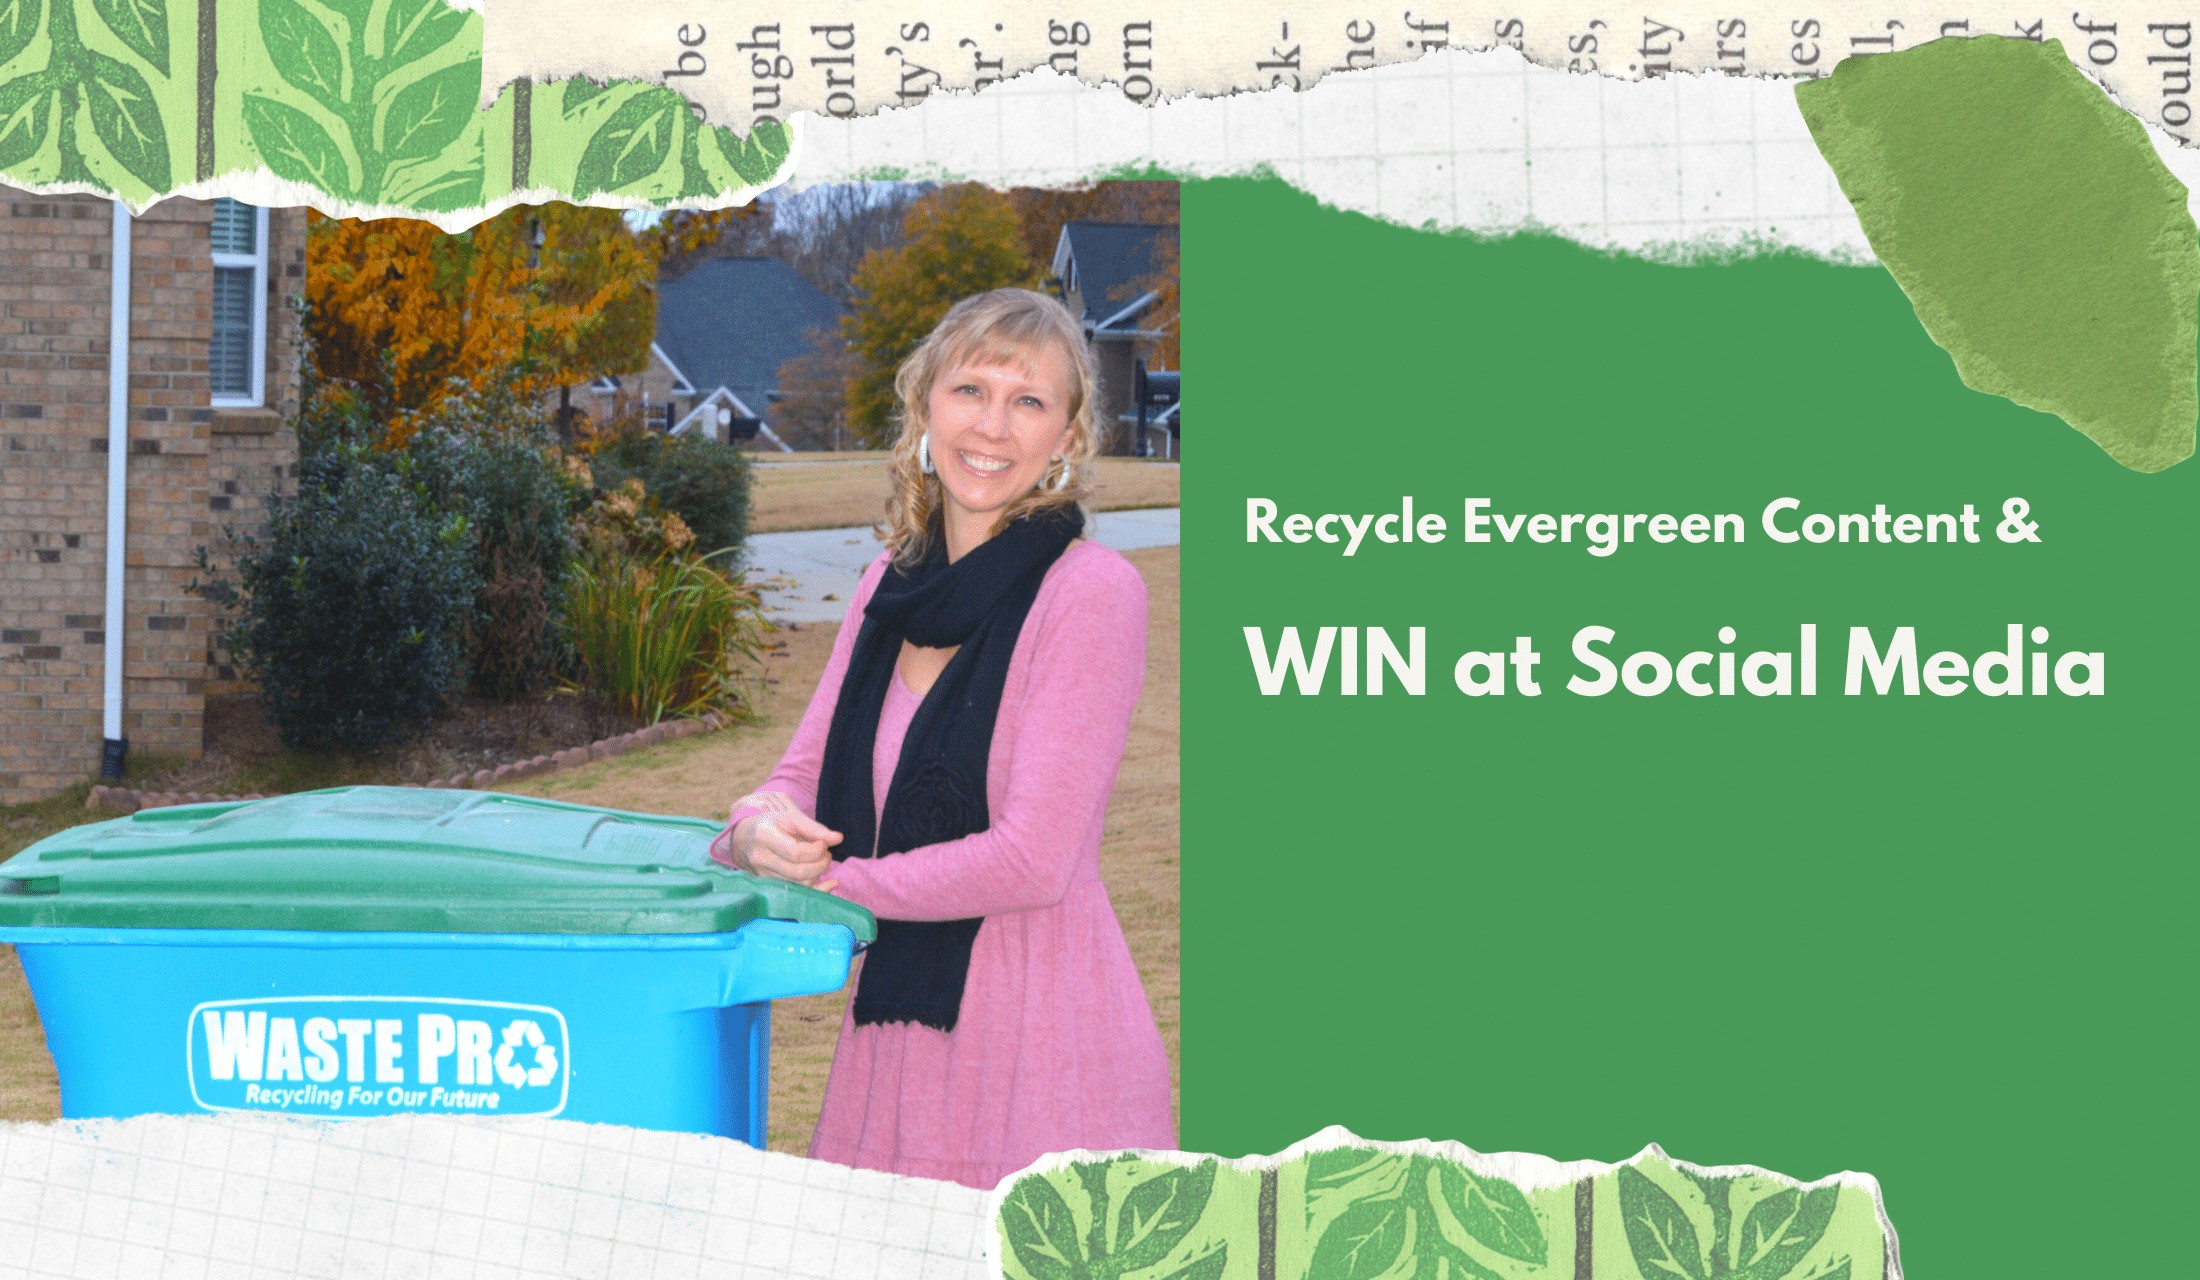 Recycle content and make social media content creation easy